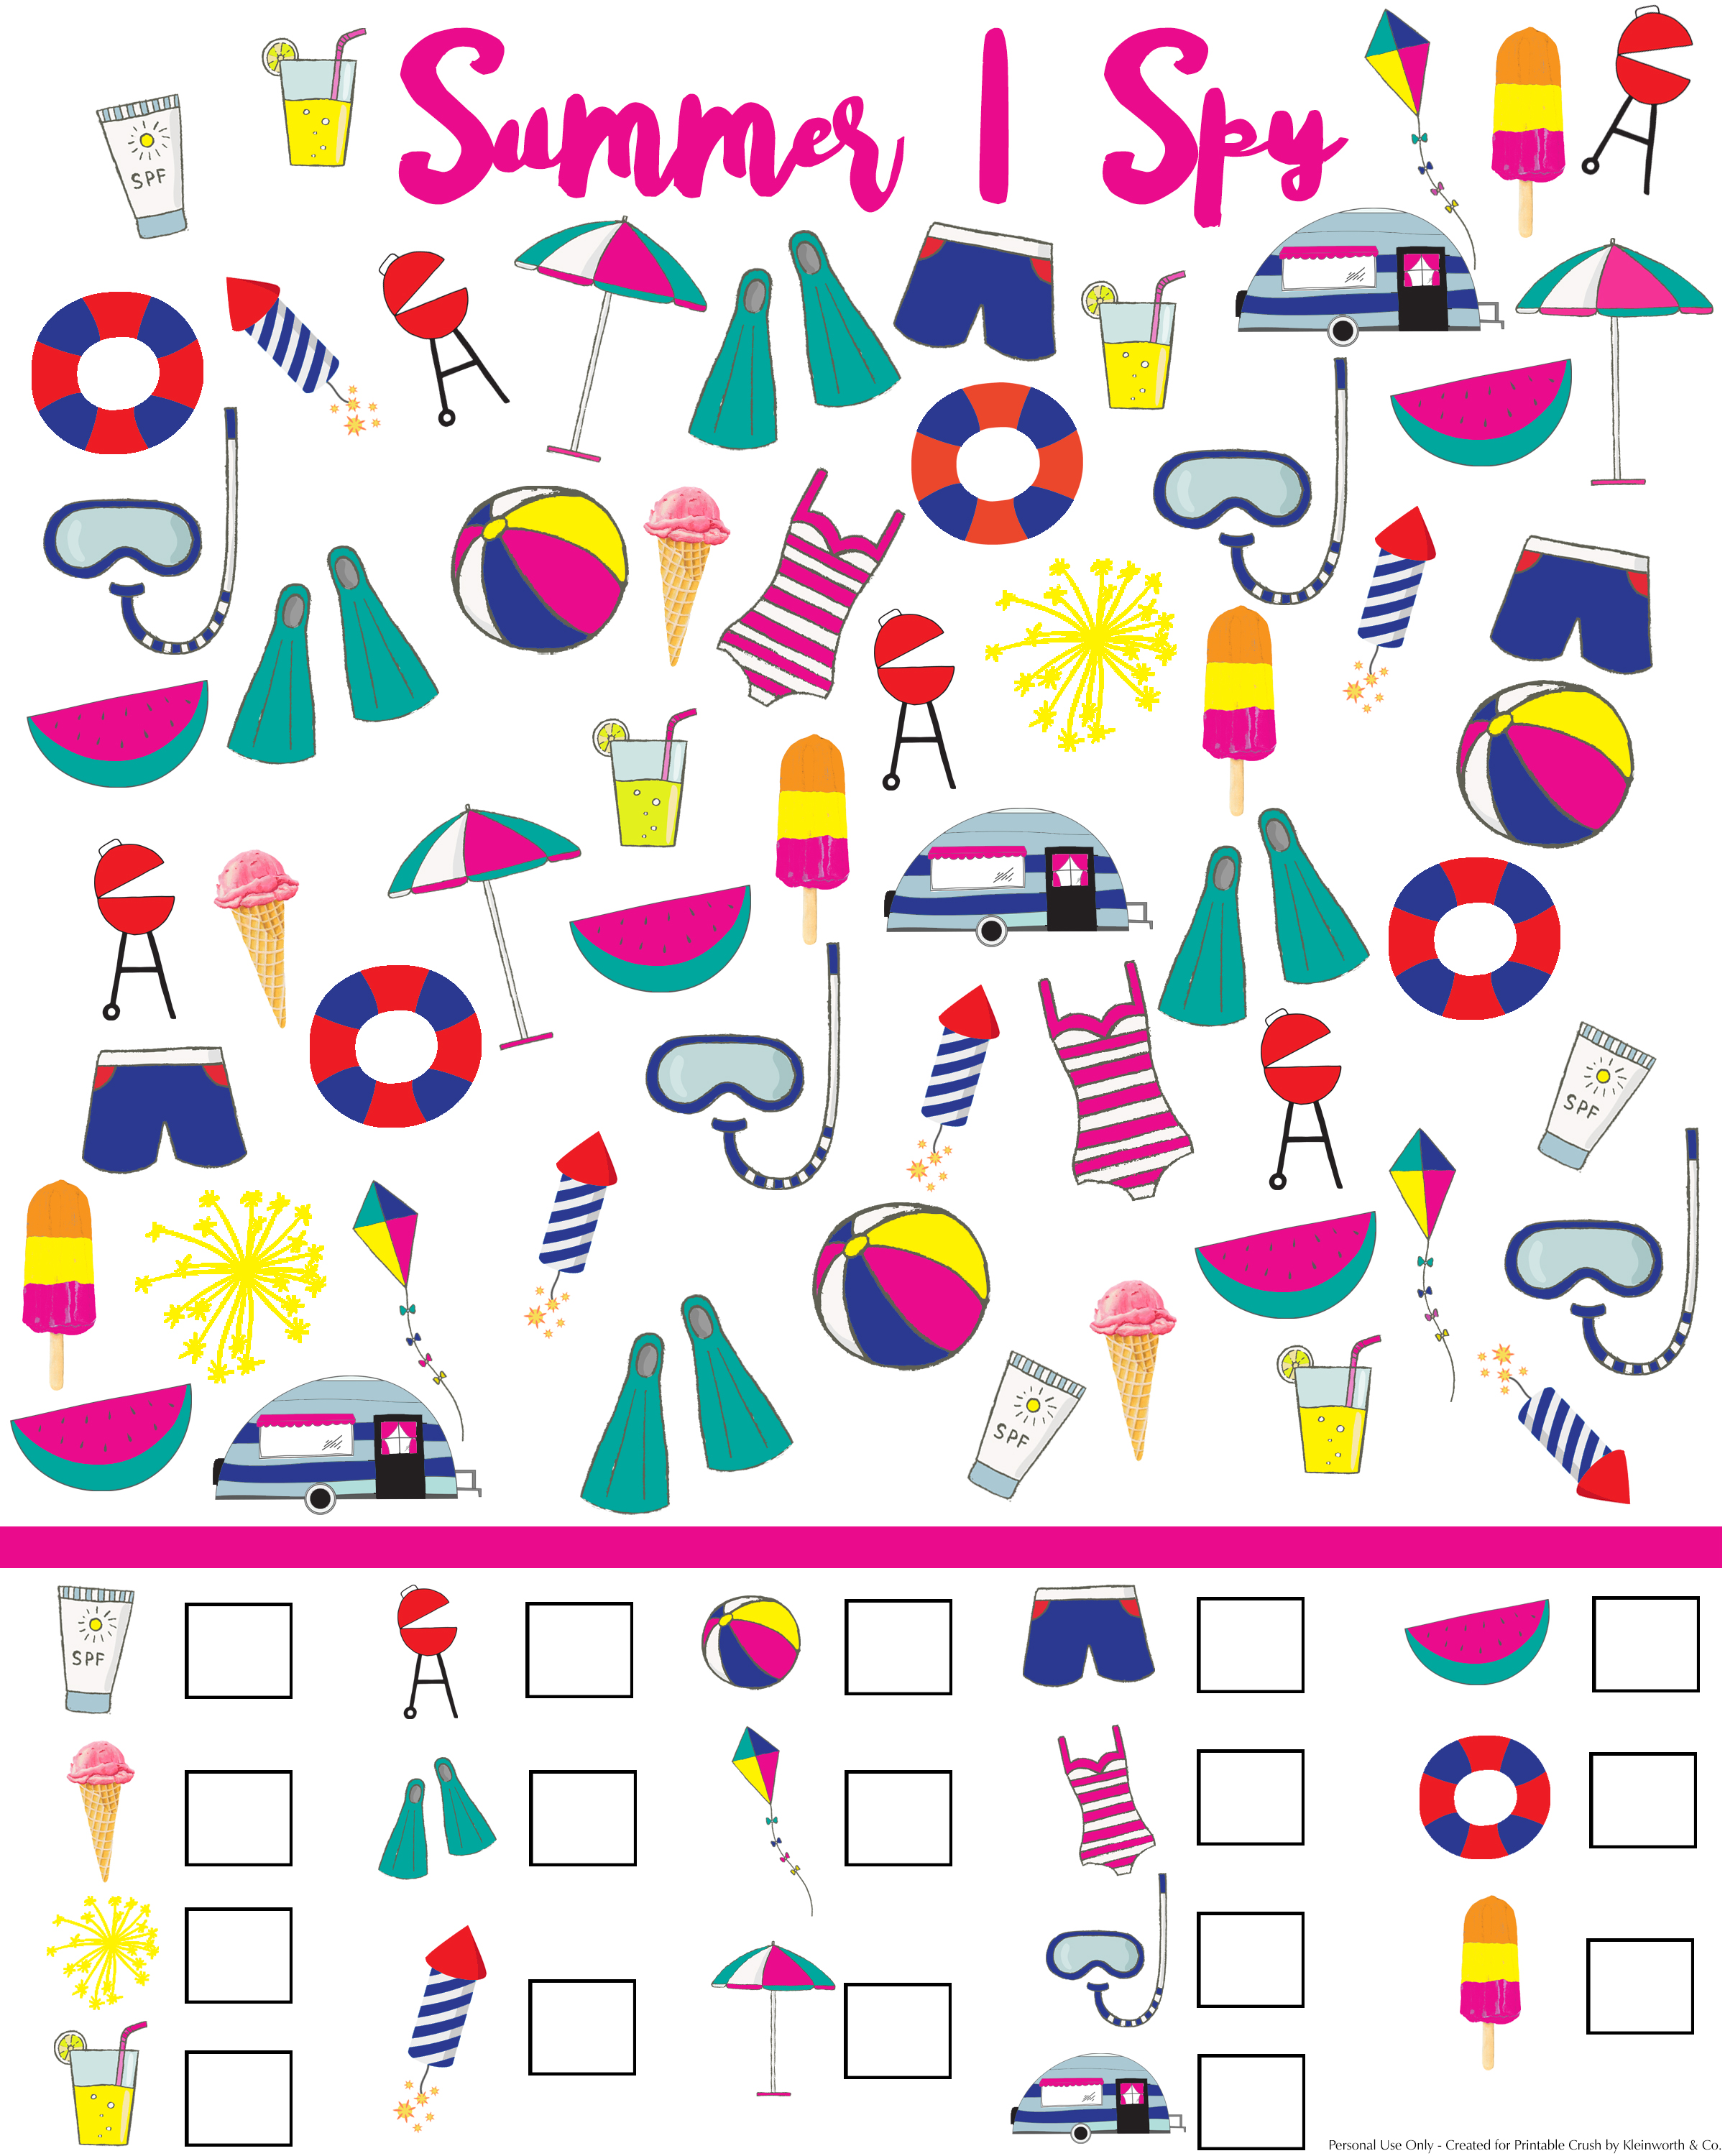 image about I Spy Printable identify Summer season I Spy Printable - Kleinworth Co